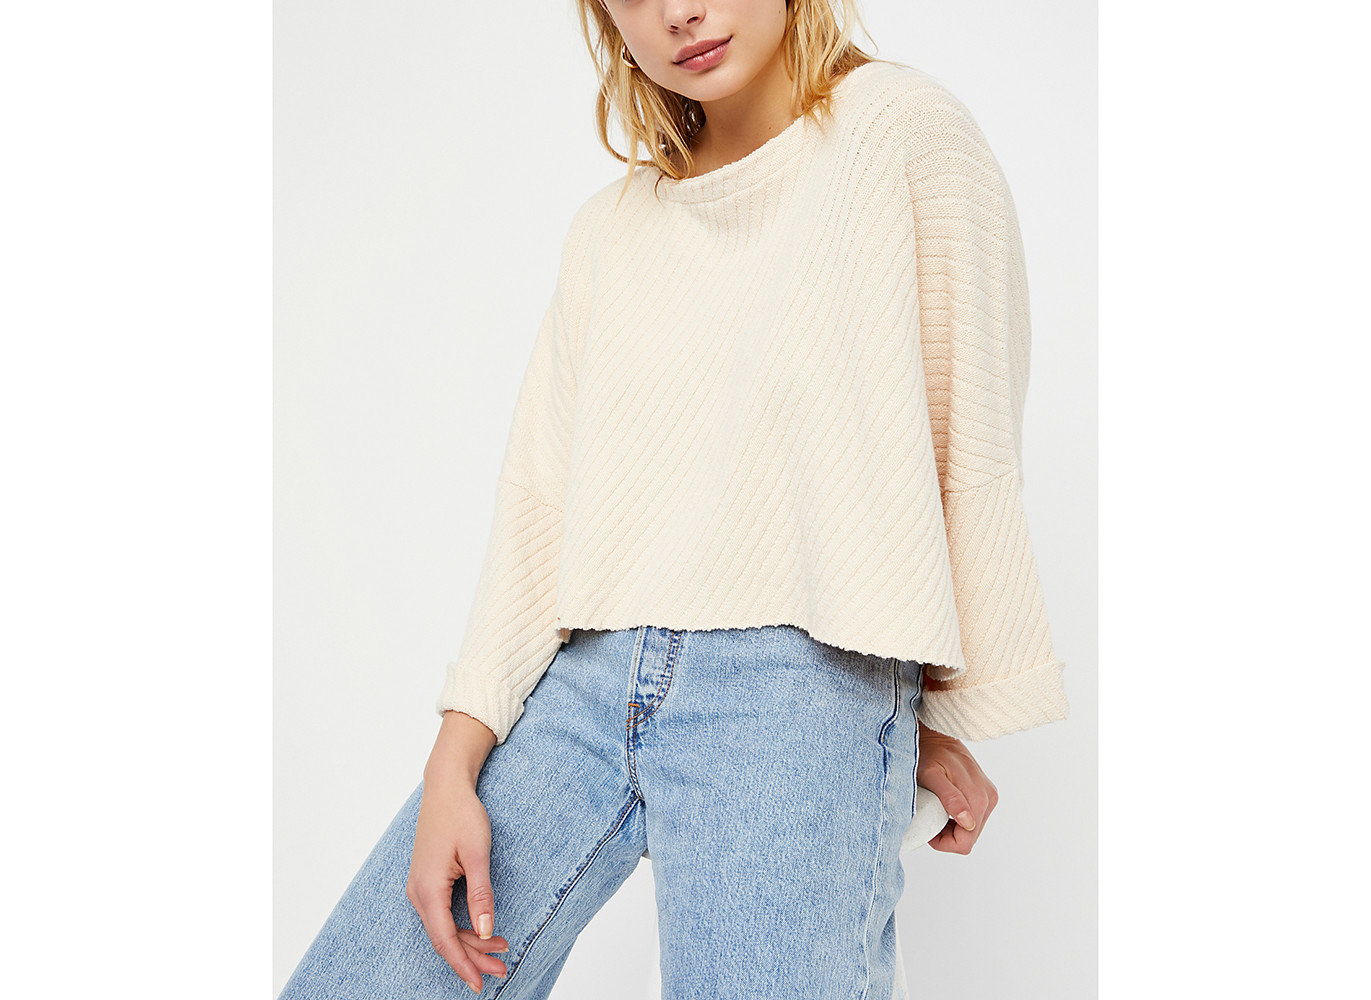 Style + Design Travel Shop person clothing sleeve indoor shoulder neck posing woolen joint sweater poncho beige blouse peach